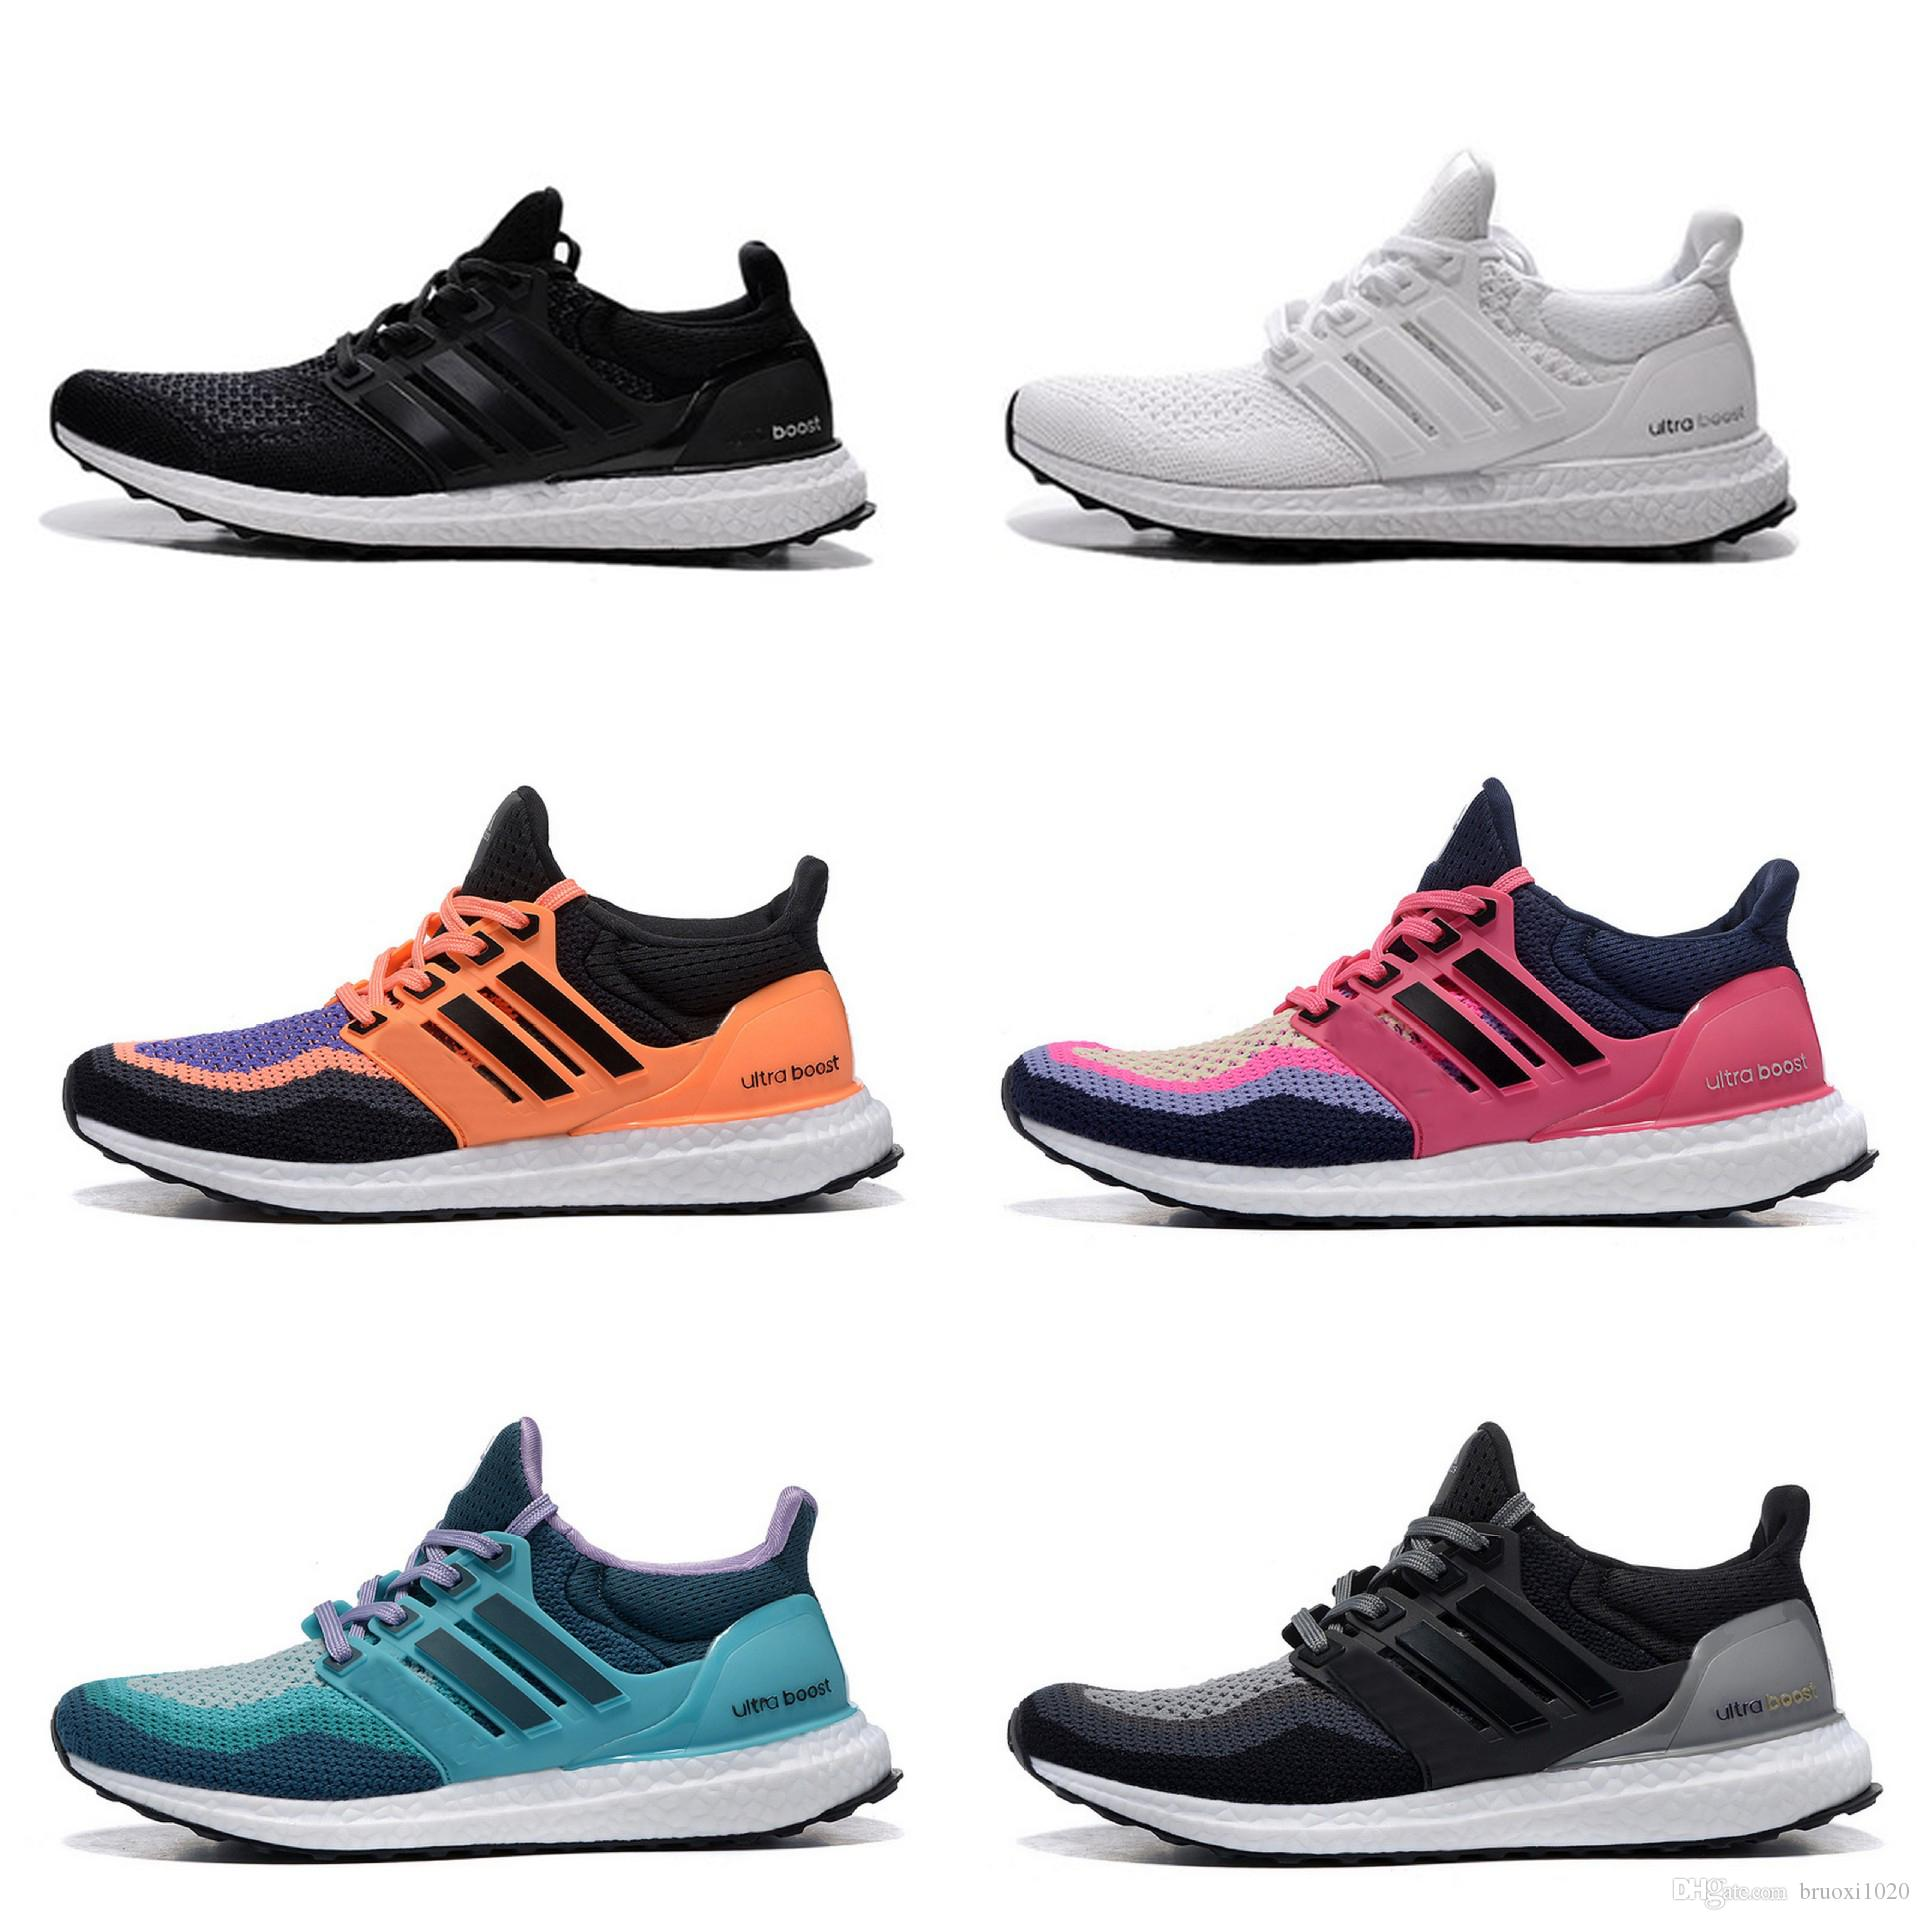 2017 New Ultra Boost Uncaged Black White Men Women Running Shoes Fashion  Tripple White Ultra Boosts Casual Shoes Ultrabost 36 45 Womens Running  Shoes Sport ... 02d643c6ca